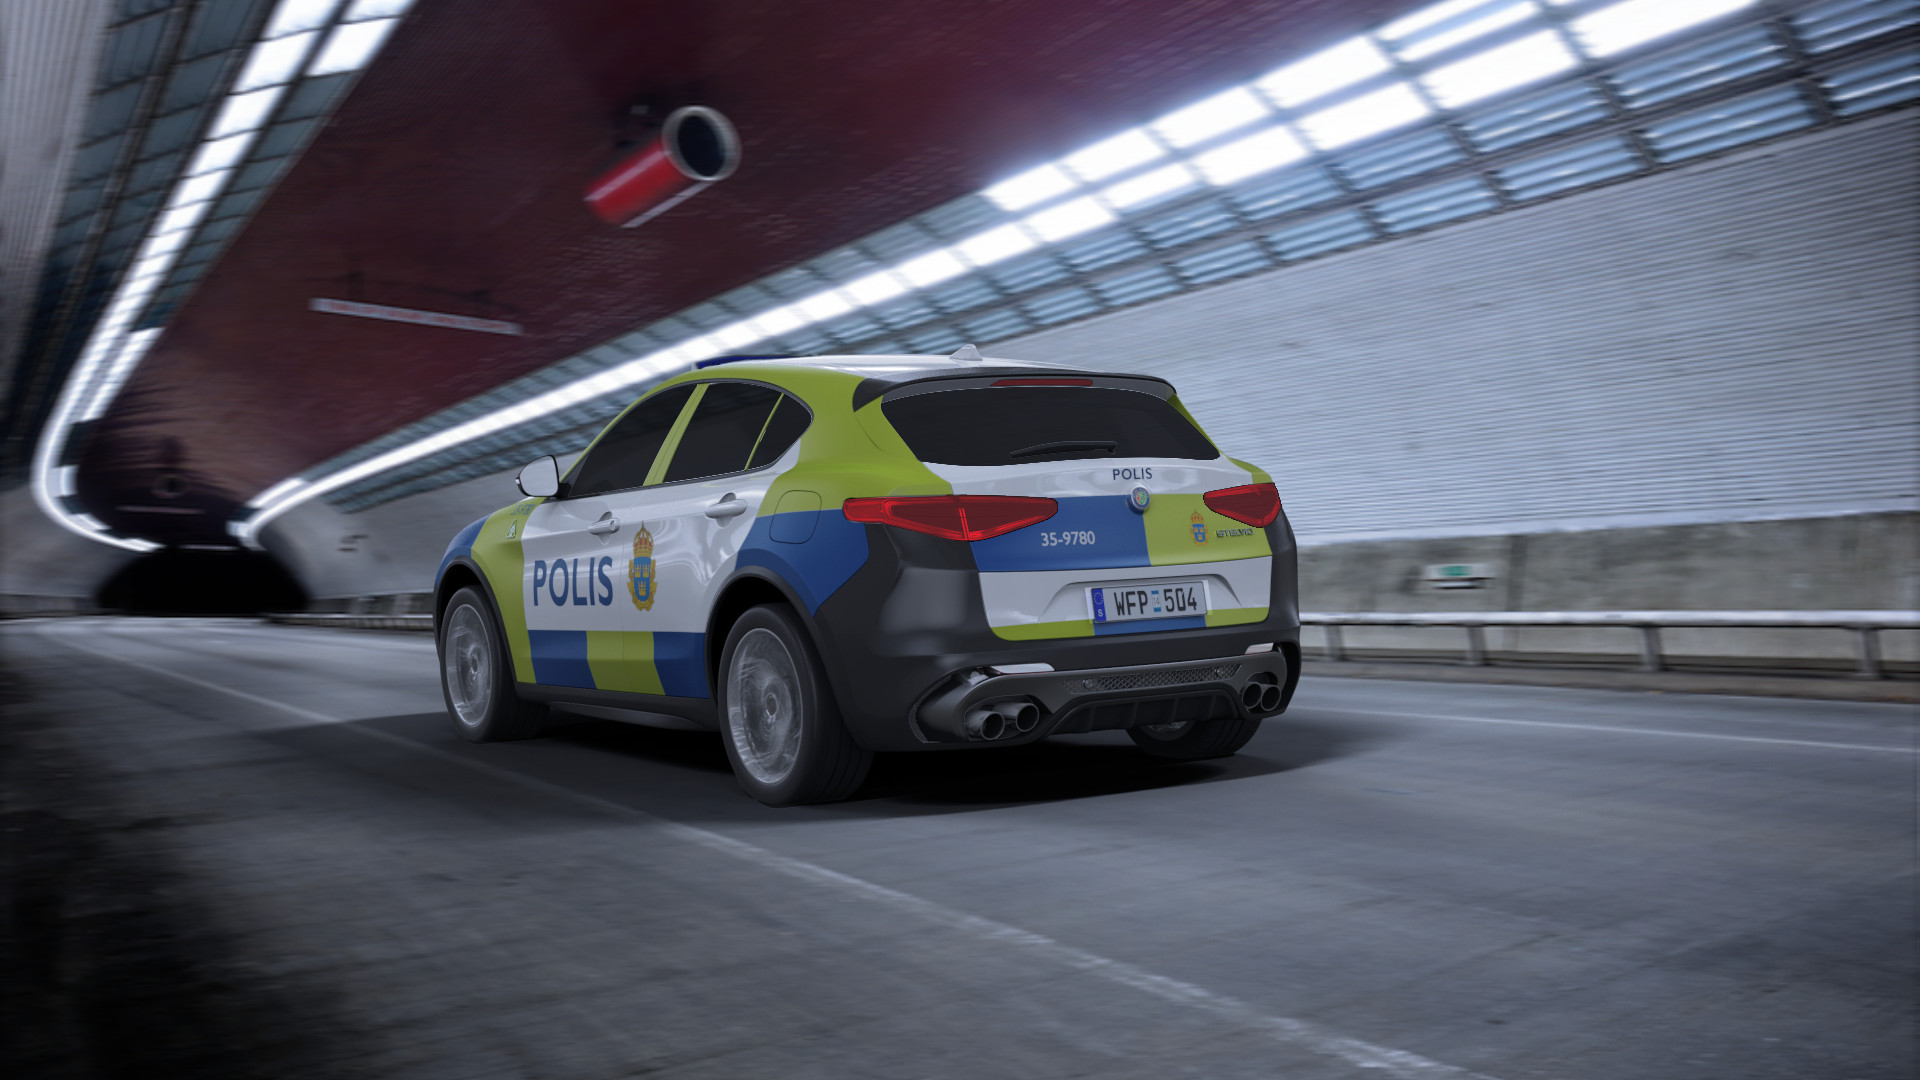 Police Car Website >> Monir Alami - Police car Alfa Romeo Stelvio